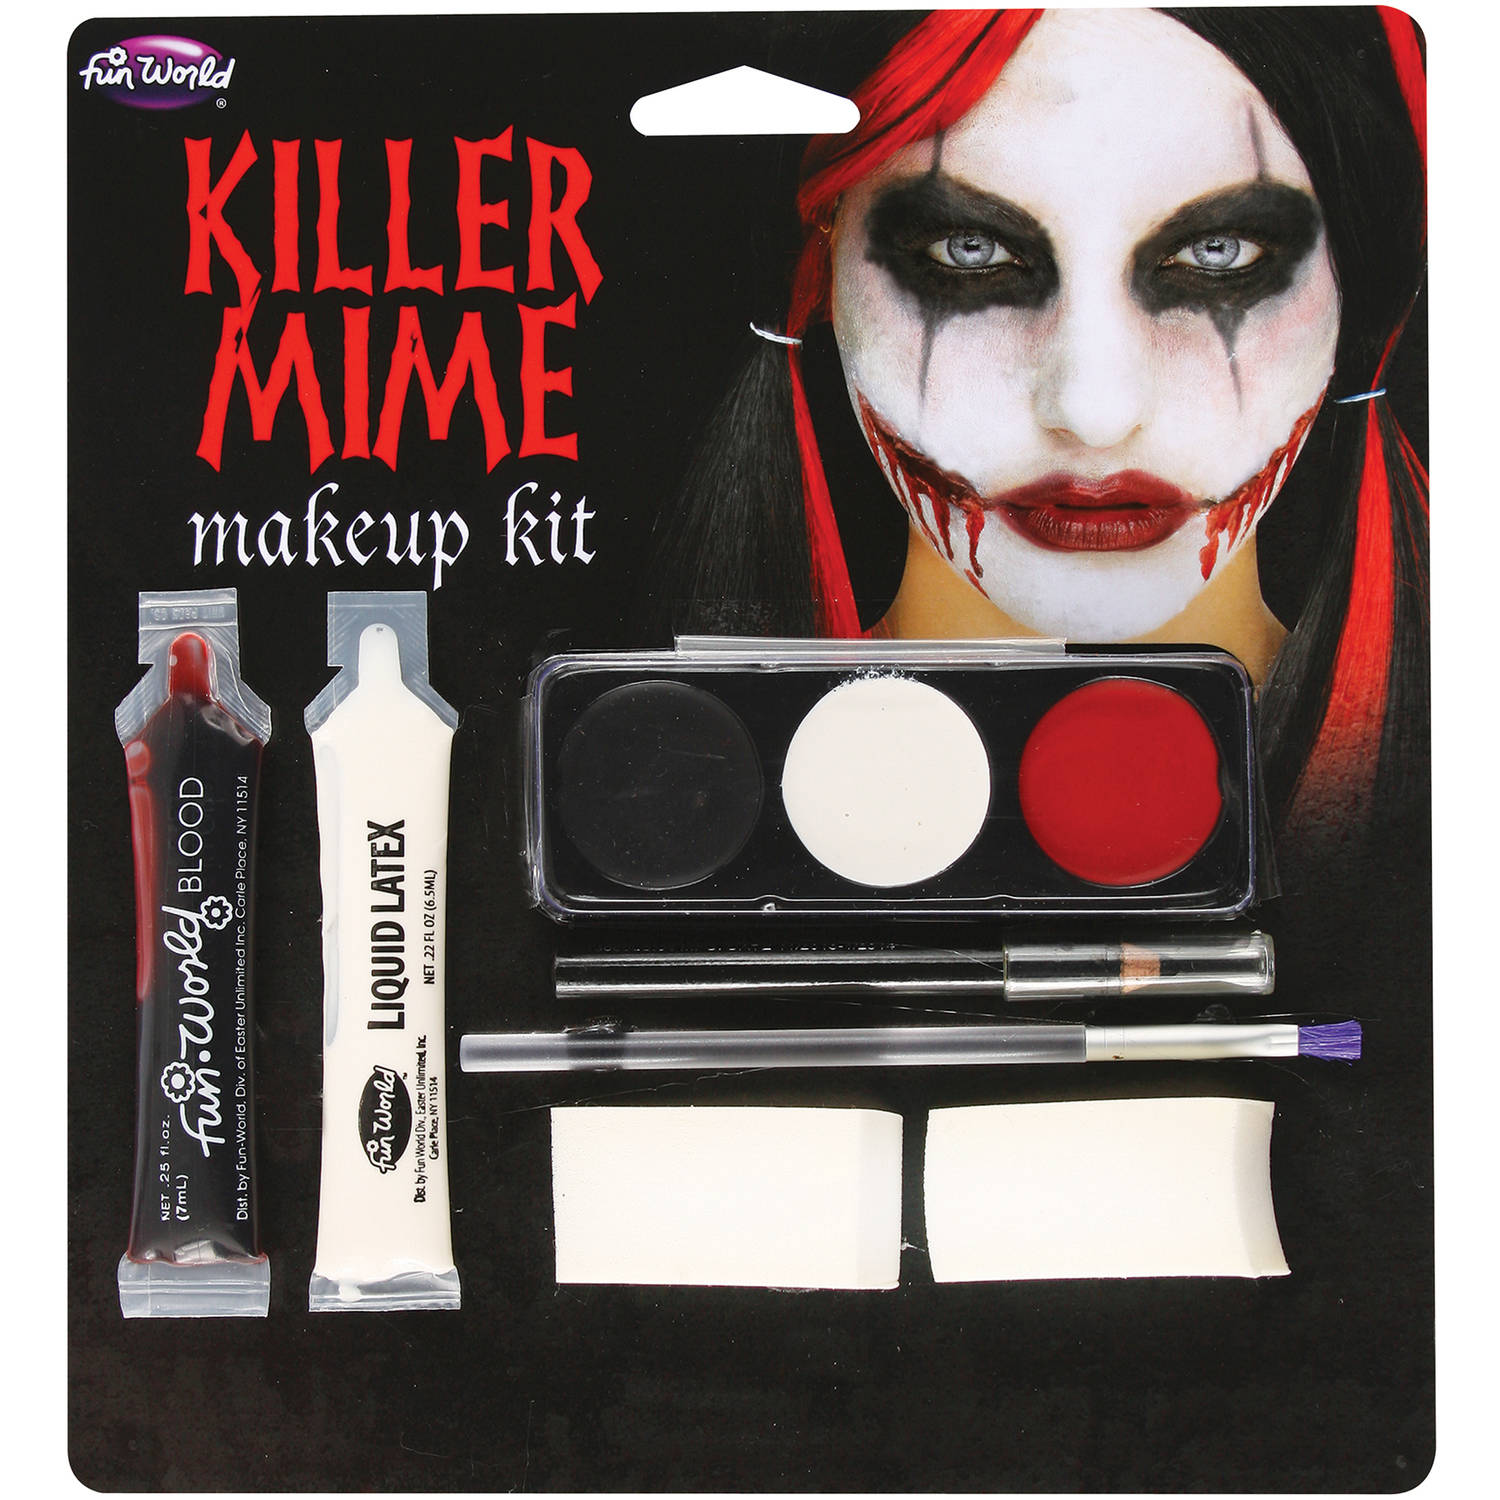 Killer Mime Makeup Kit Adult Halloween Accessory By Fun World